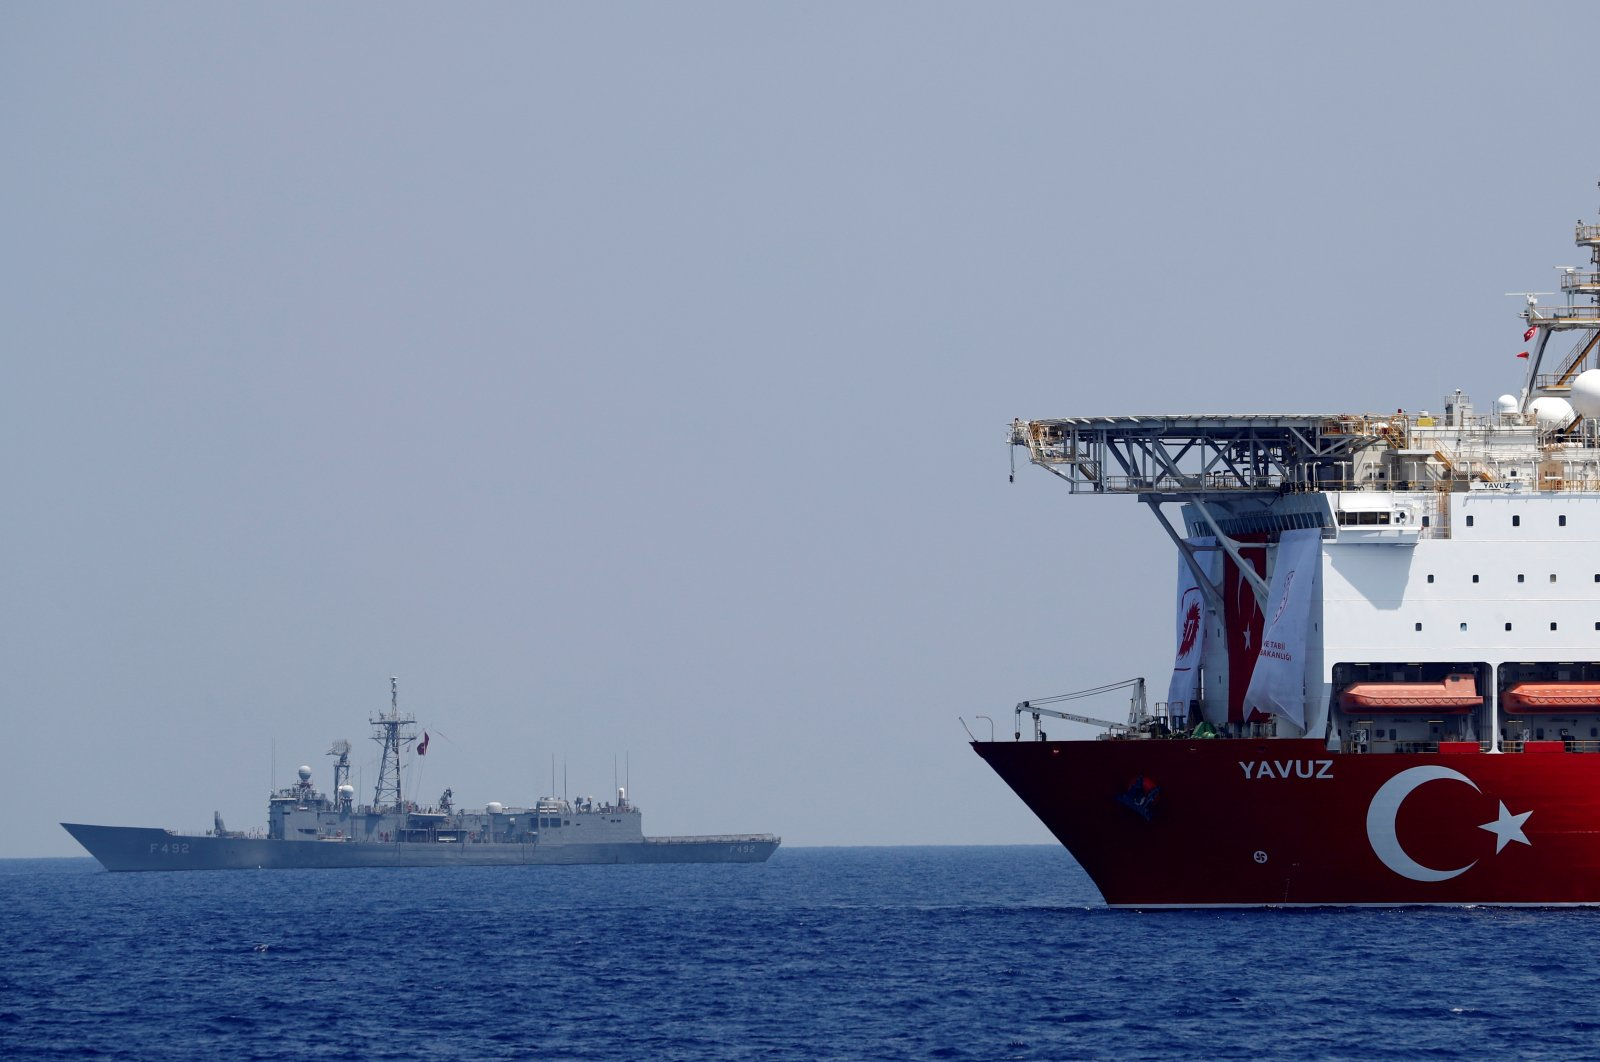 The Turkish drilling vessel Yavuz (R) being escorted by a Turkish navy frigate in the Eastern Mediterranean off the island of Cyprus, Aug. 6, 2019. (Reuters Photo)